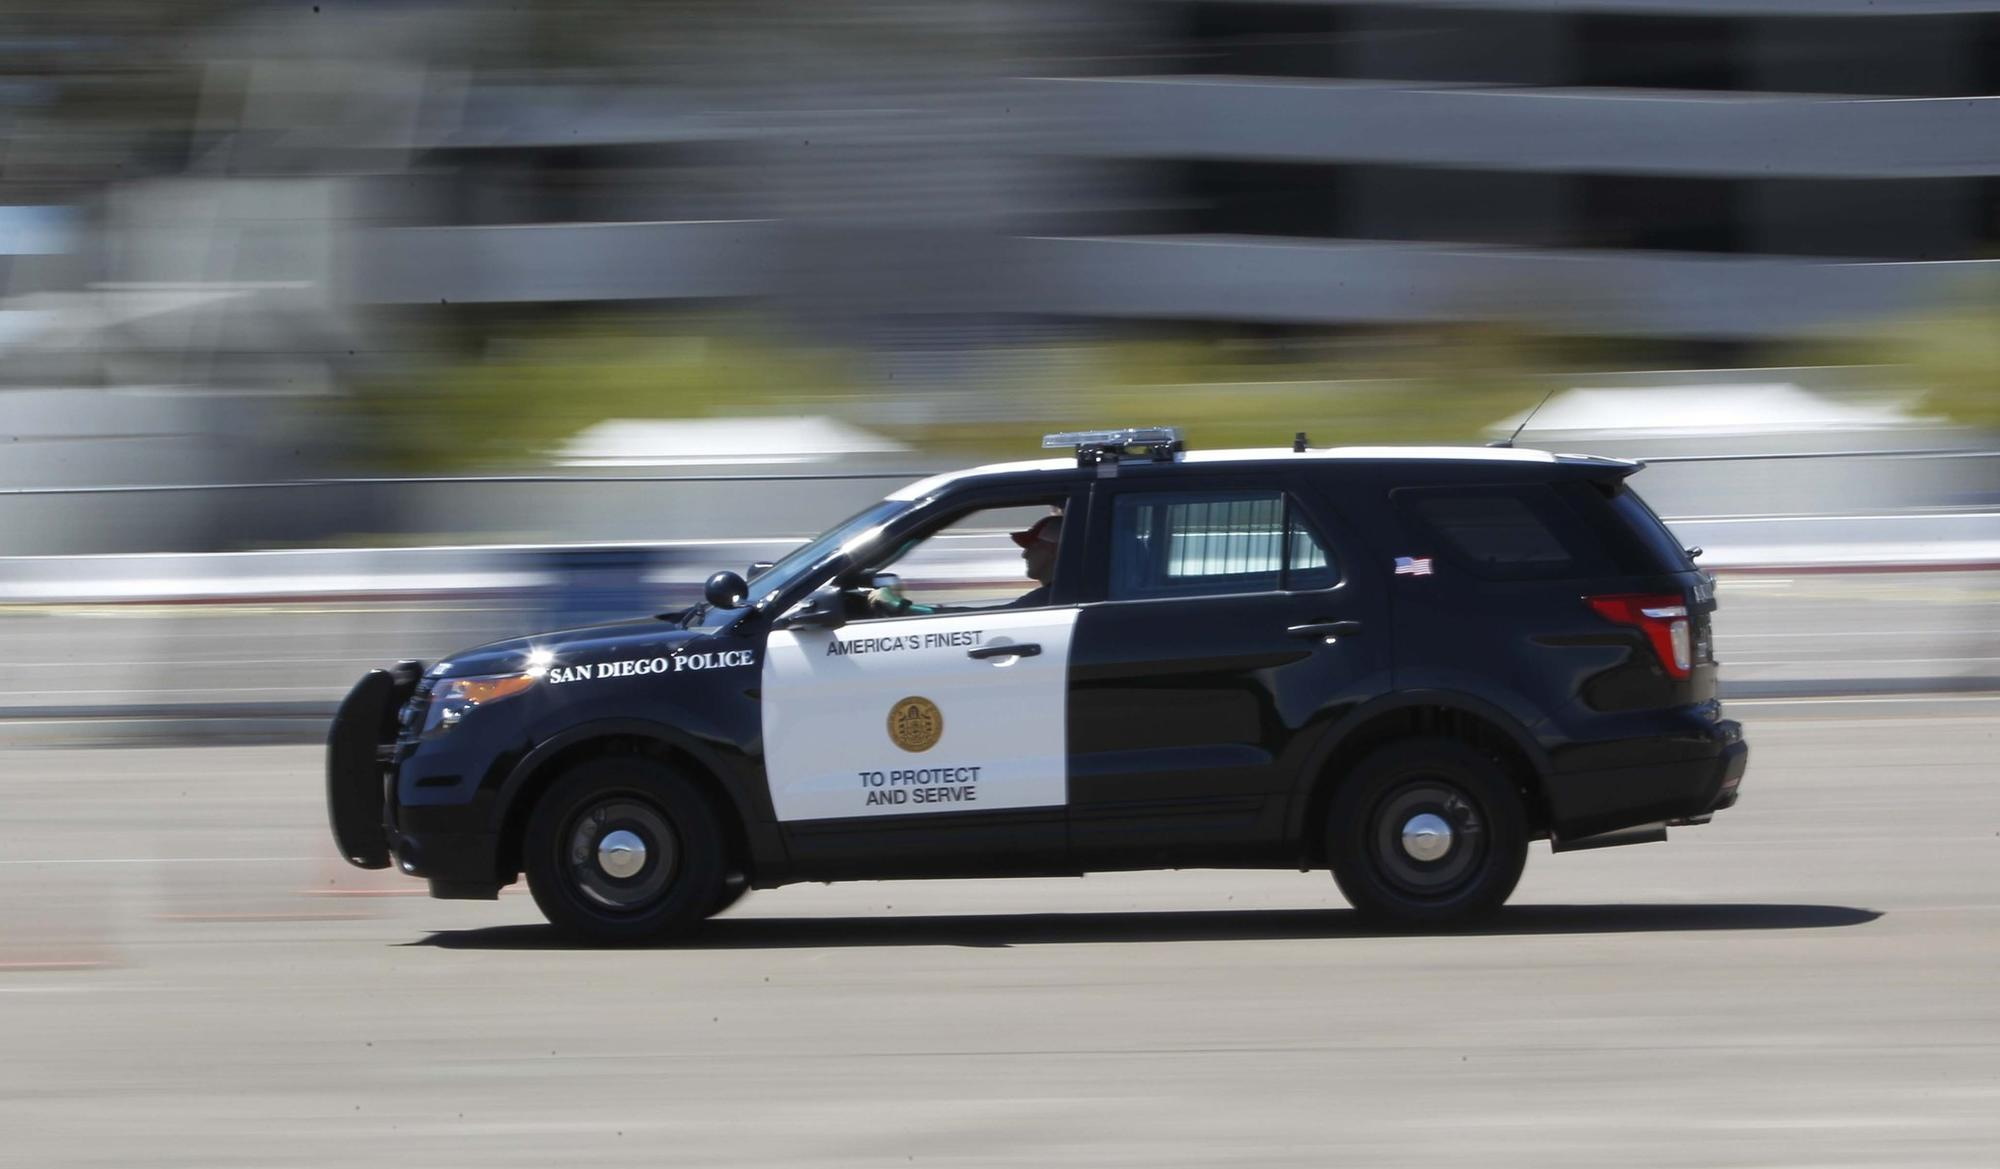 """The San Diego Police department has moved away from Crown Victoria sedans after ford ceased productions and are transitioning to a new crossover vehicle call the Ford """"Intercepto"""